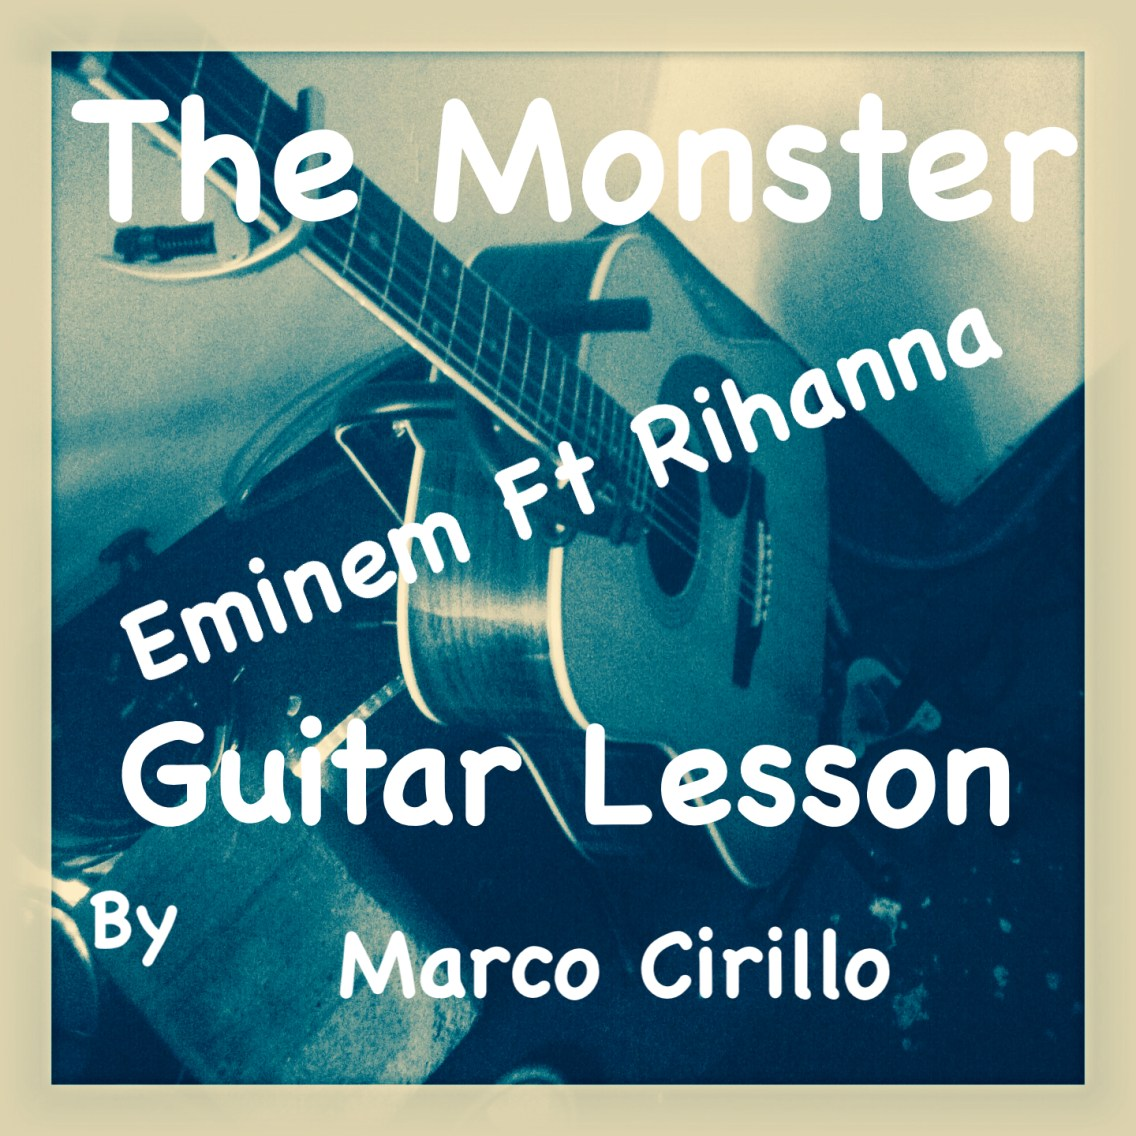 The Monster - Eminem Ft Rihanna - Chords and Tab - Free Online Guitar Lesson by Marco Cirillo. Learn the Songs You Love !!!Learn Guitar in London